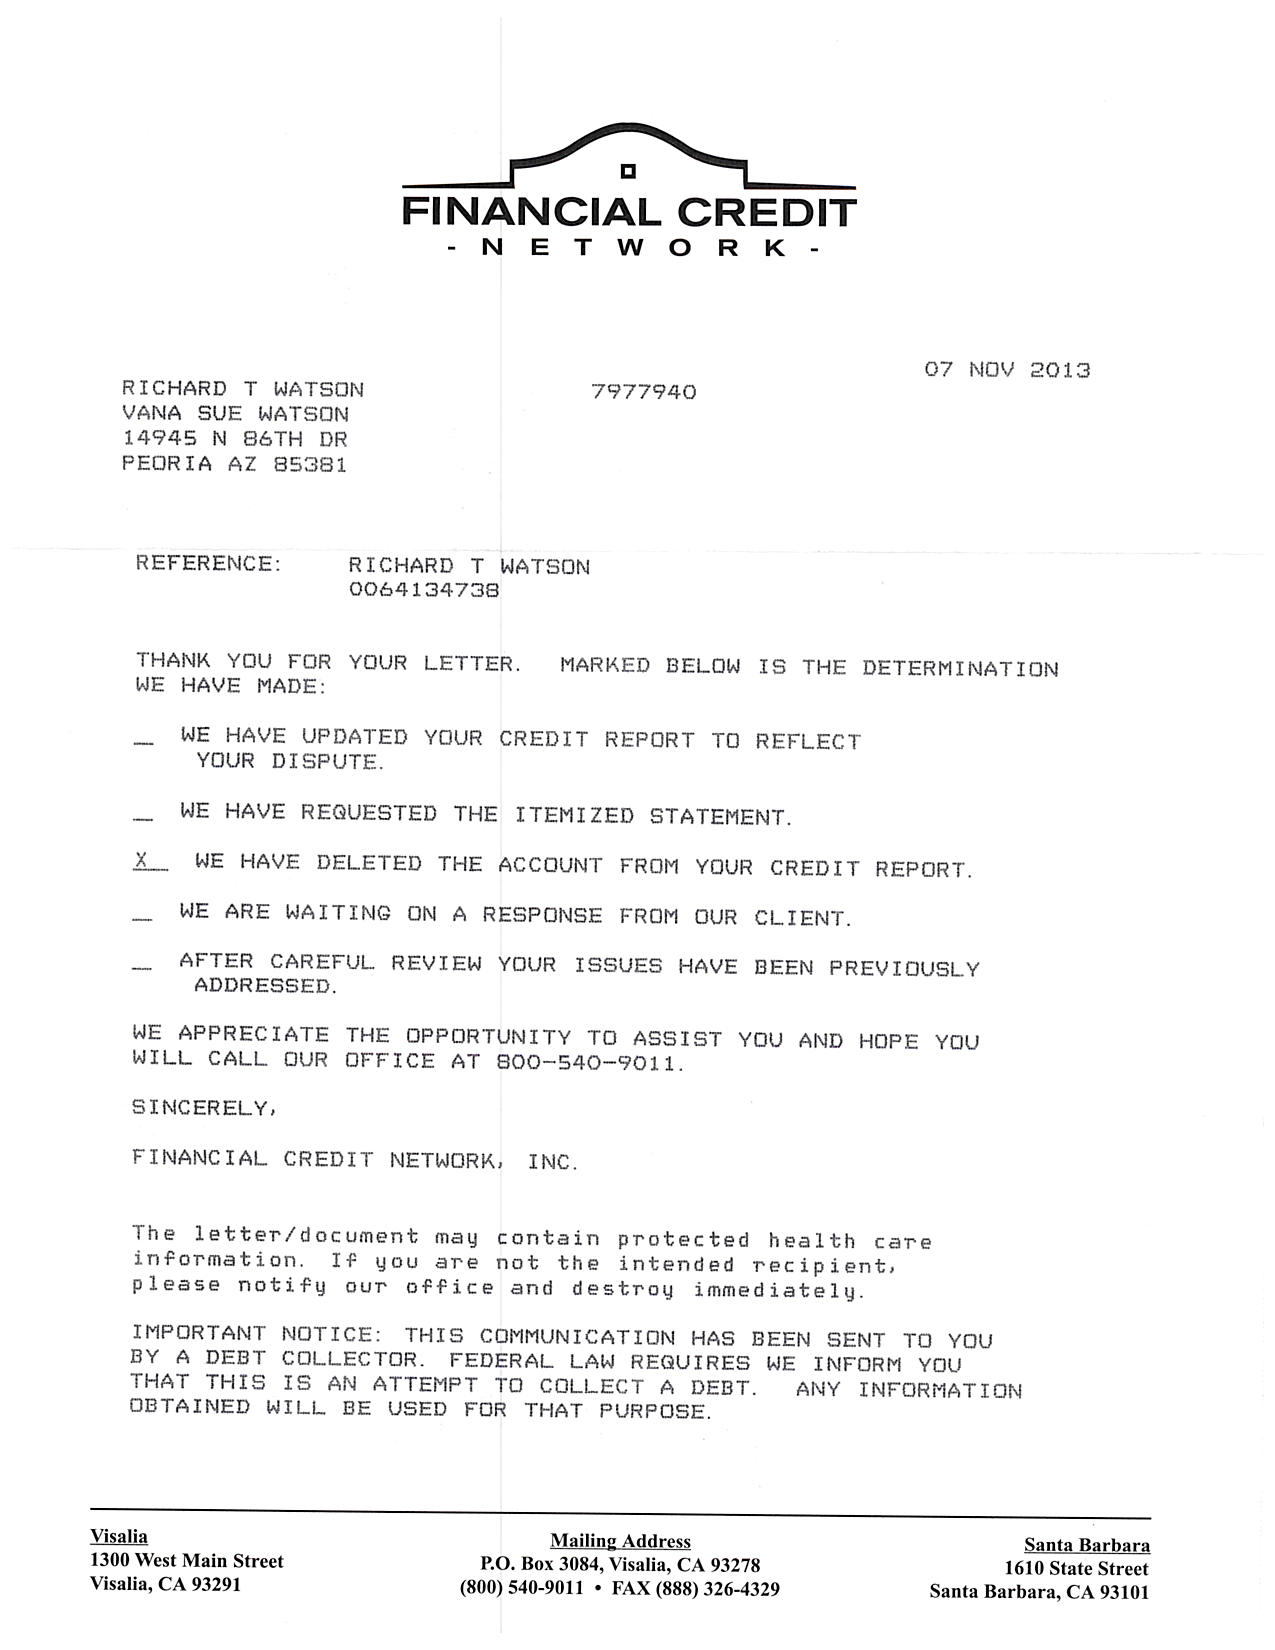 Sample Letter To Credit Bureau To Remove Paid Collection  Planner